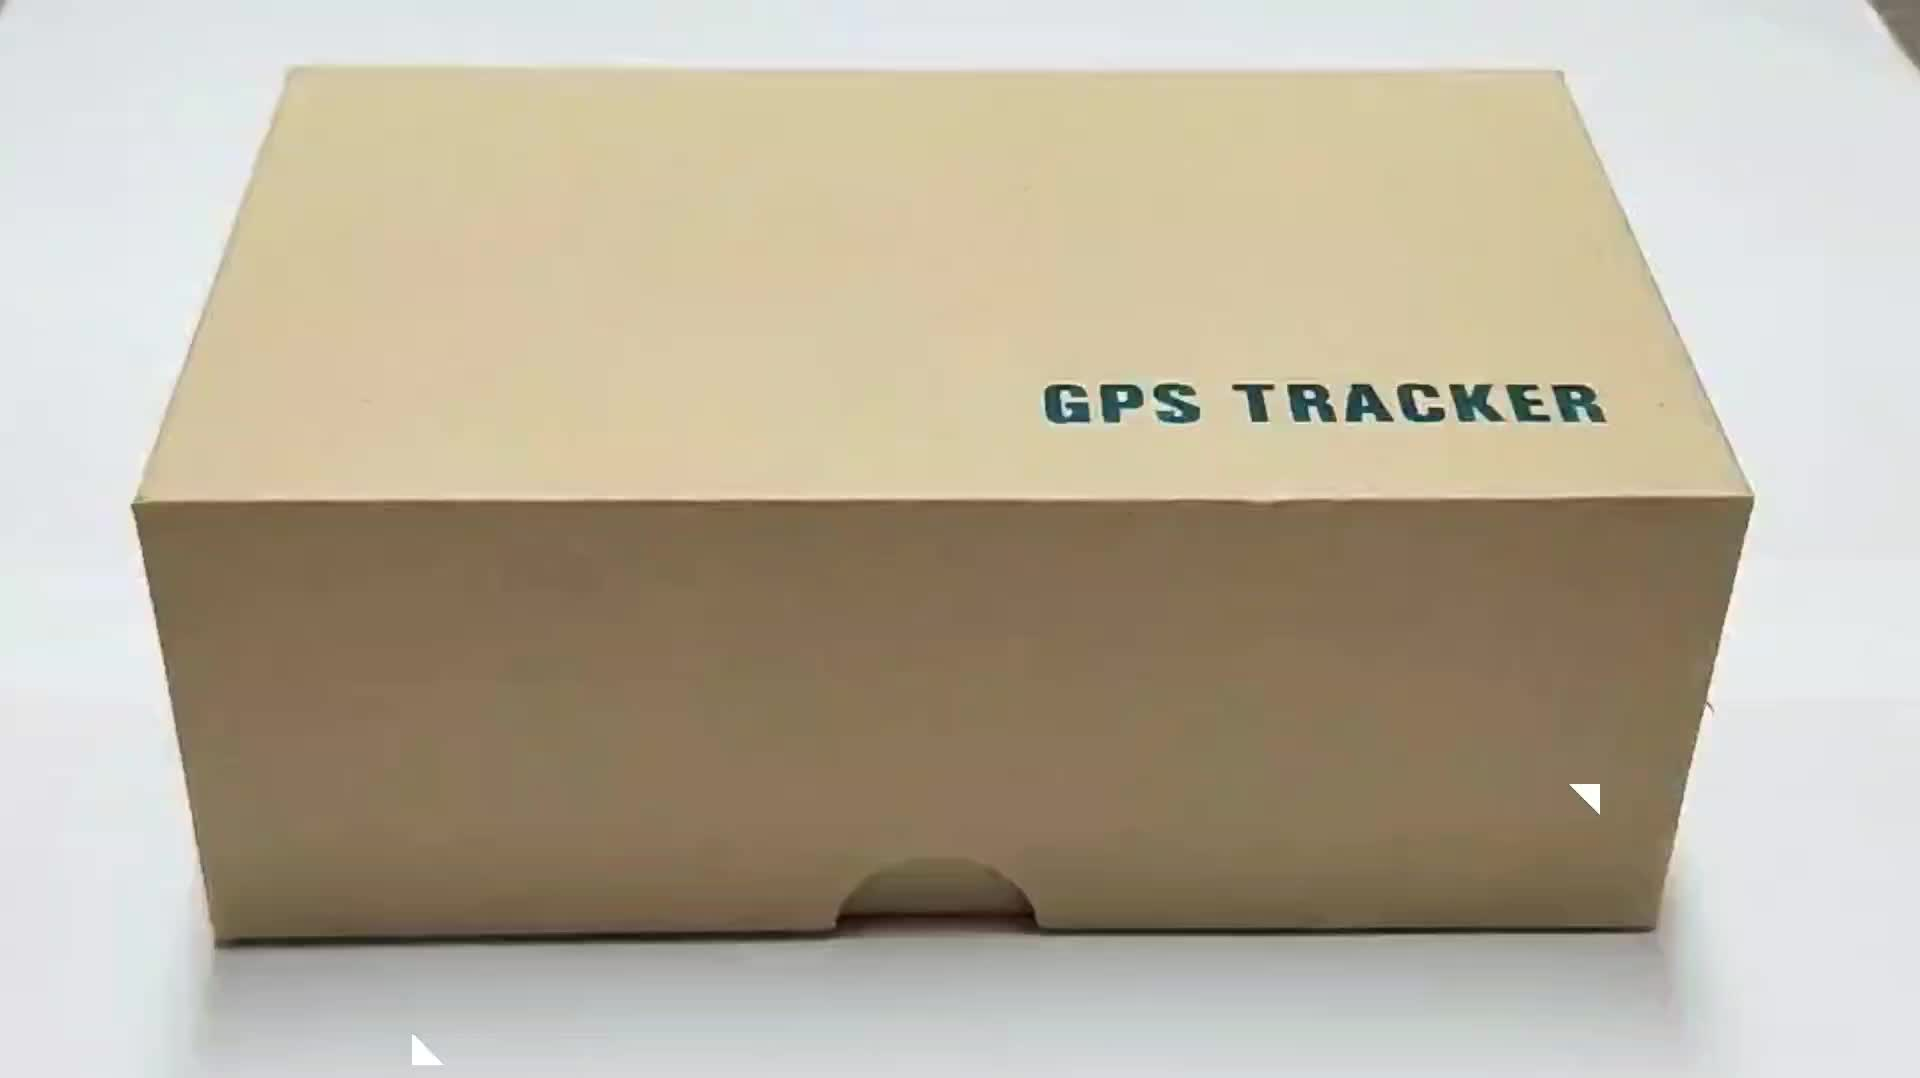 5000mah long time standby GPS tracker for car tracking device